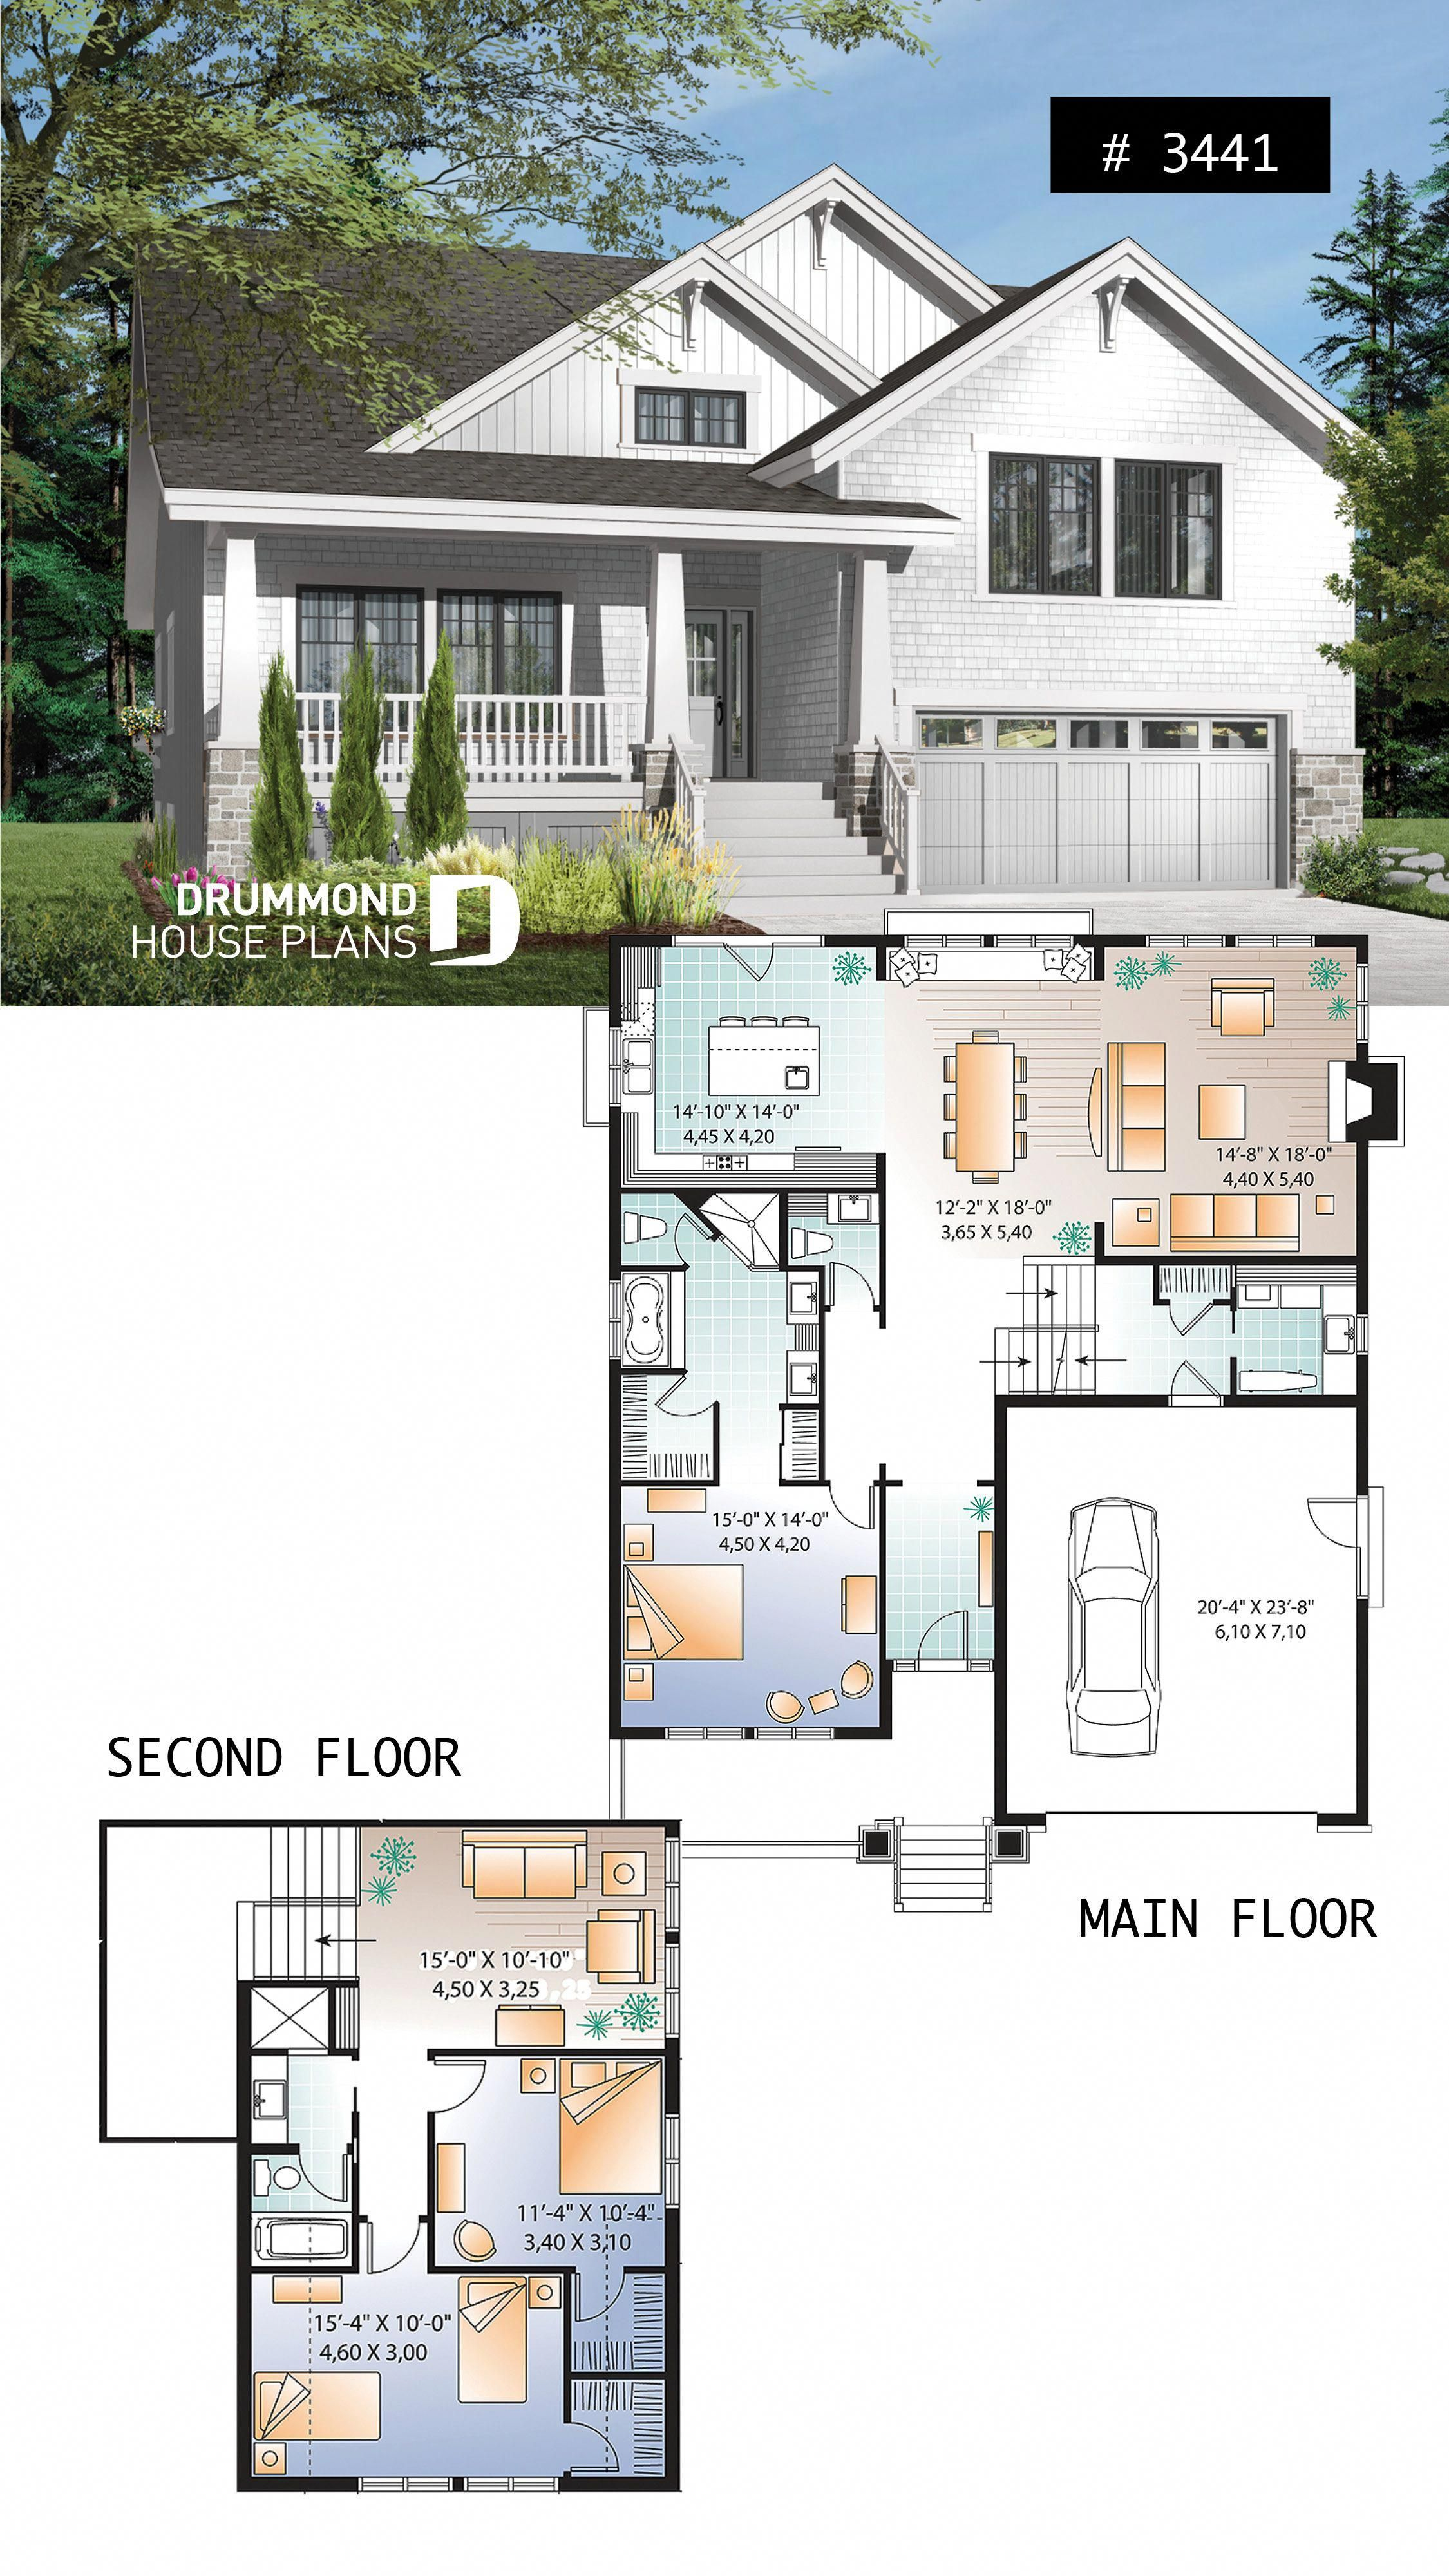 Craftsman Style Home Plan 3 To 4 Beds Master Suite On Main Floor Open Floor Plan Two Car Craftsman Style House Plans Craftsman House Plans Sims House Plans